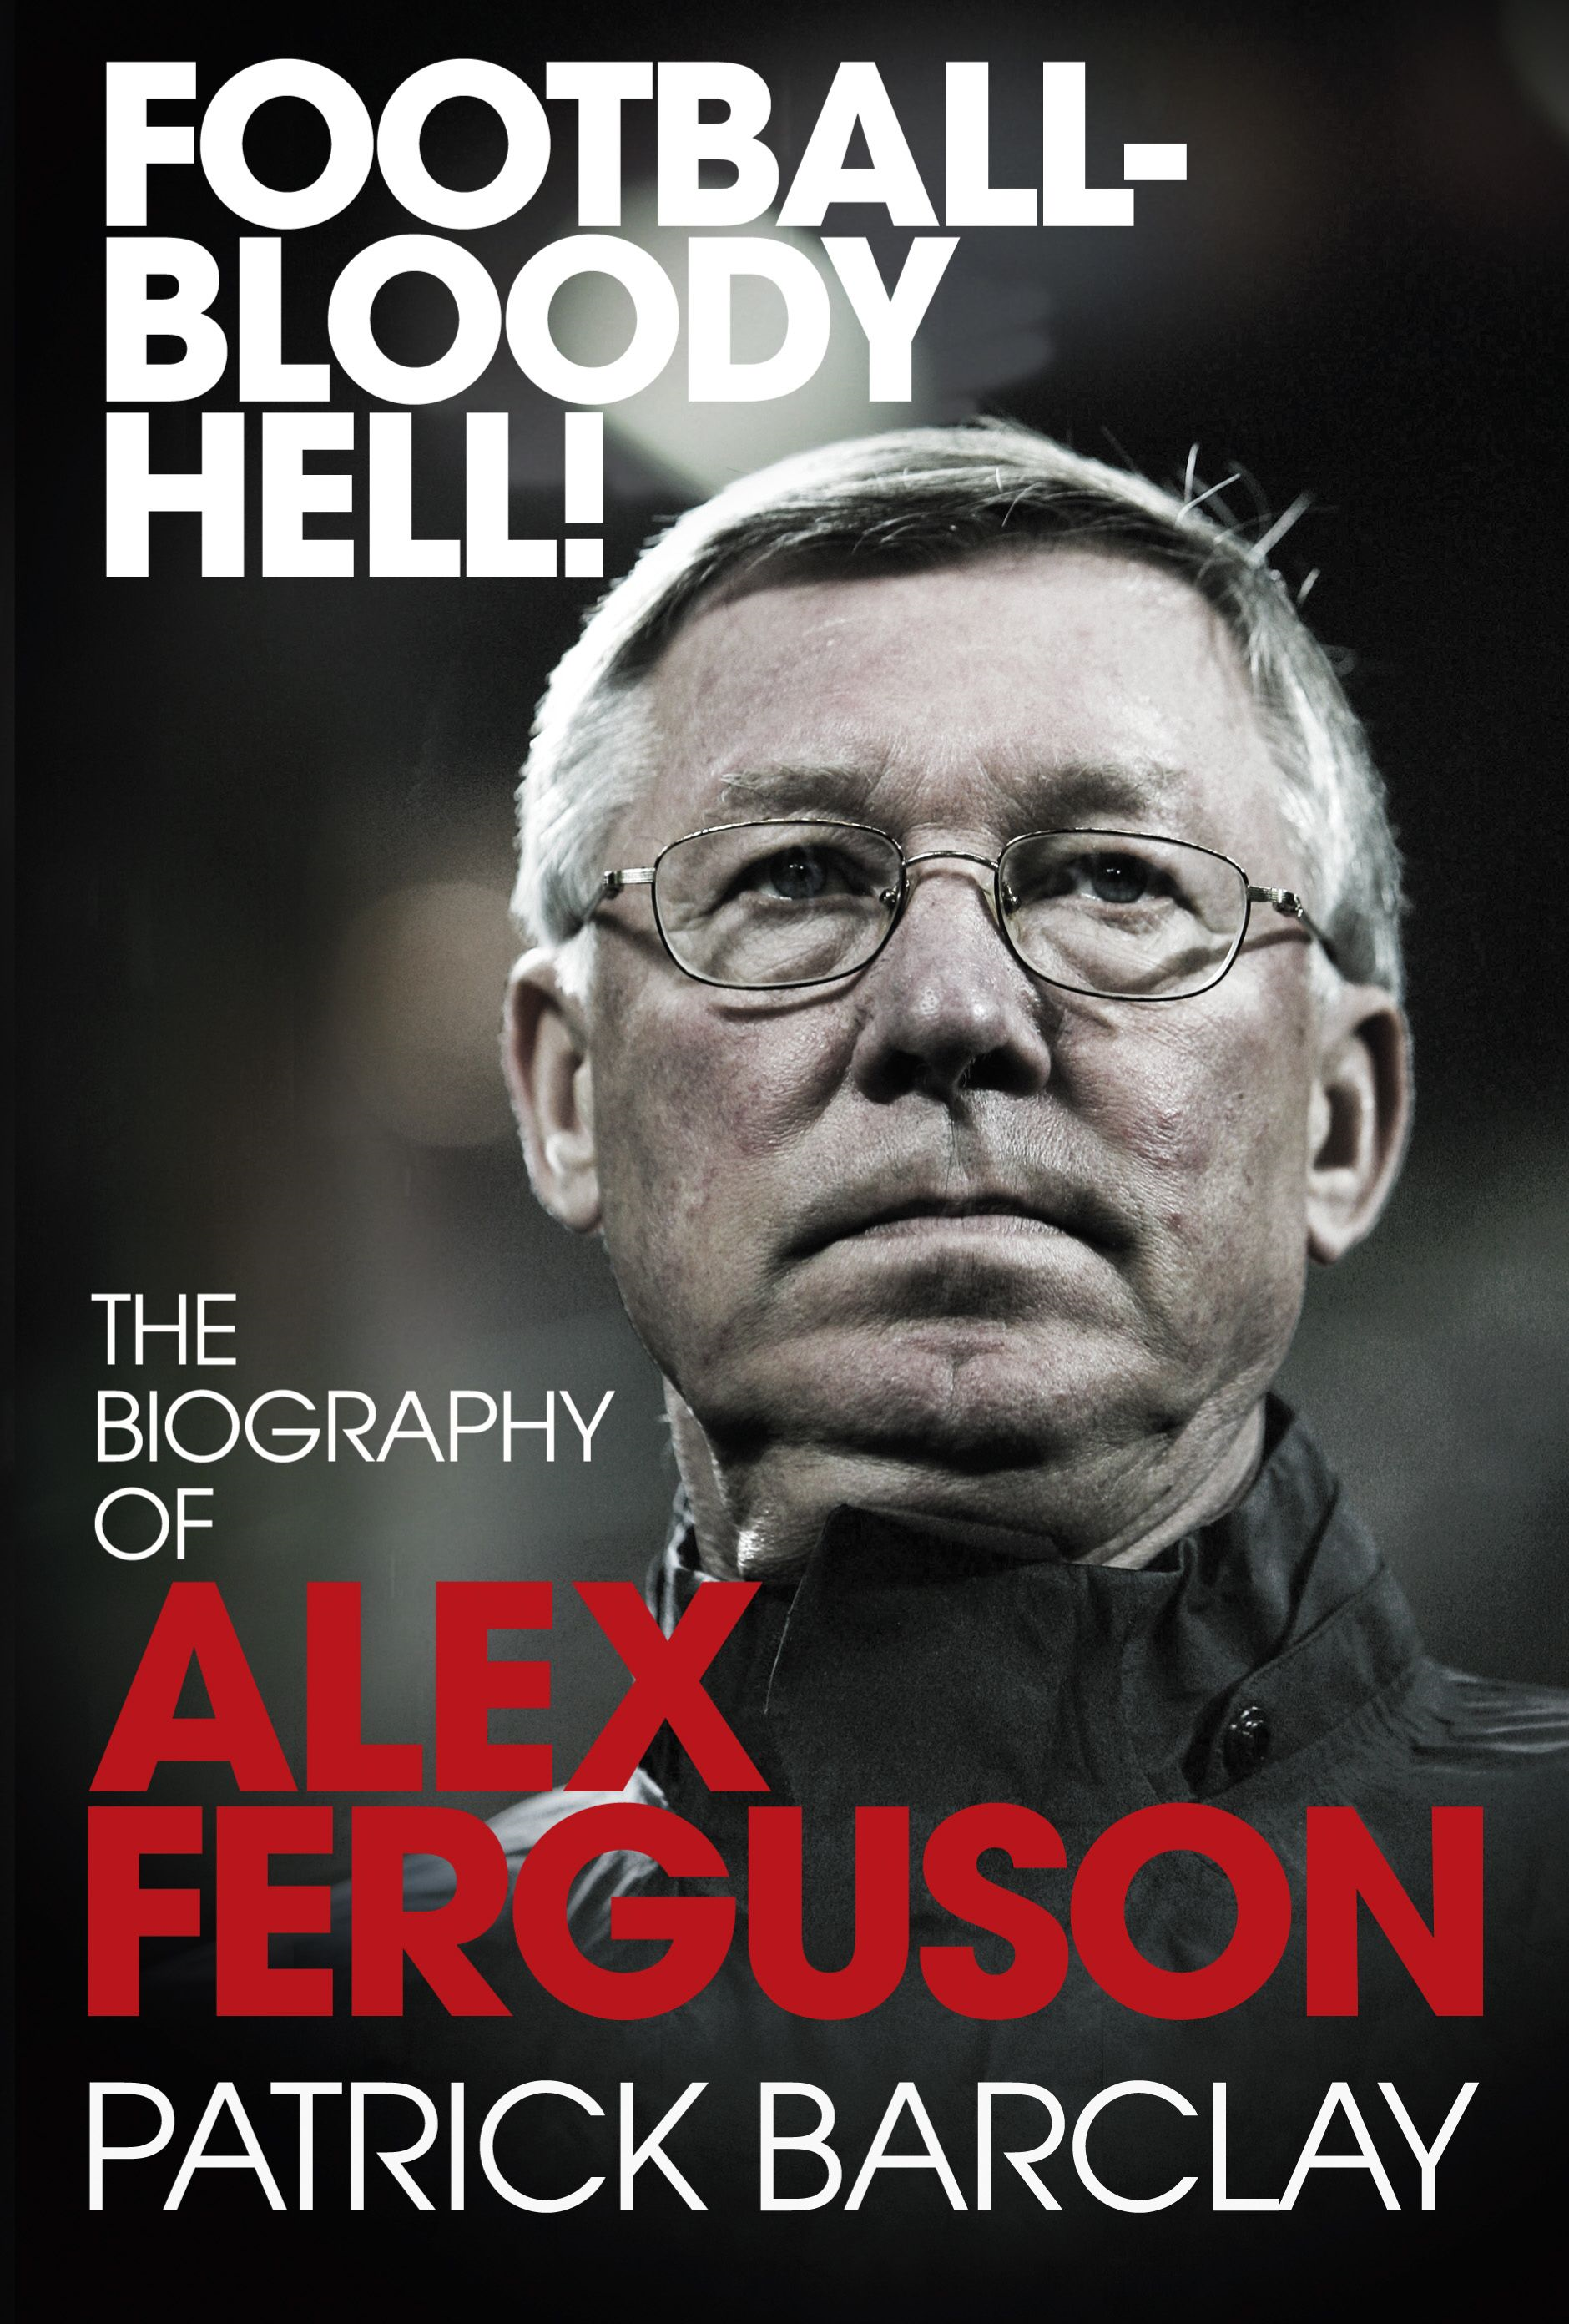 Football - Bloody Hell! The Biography of Alex Ferguson